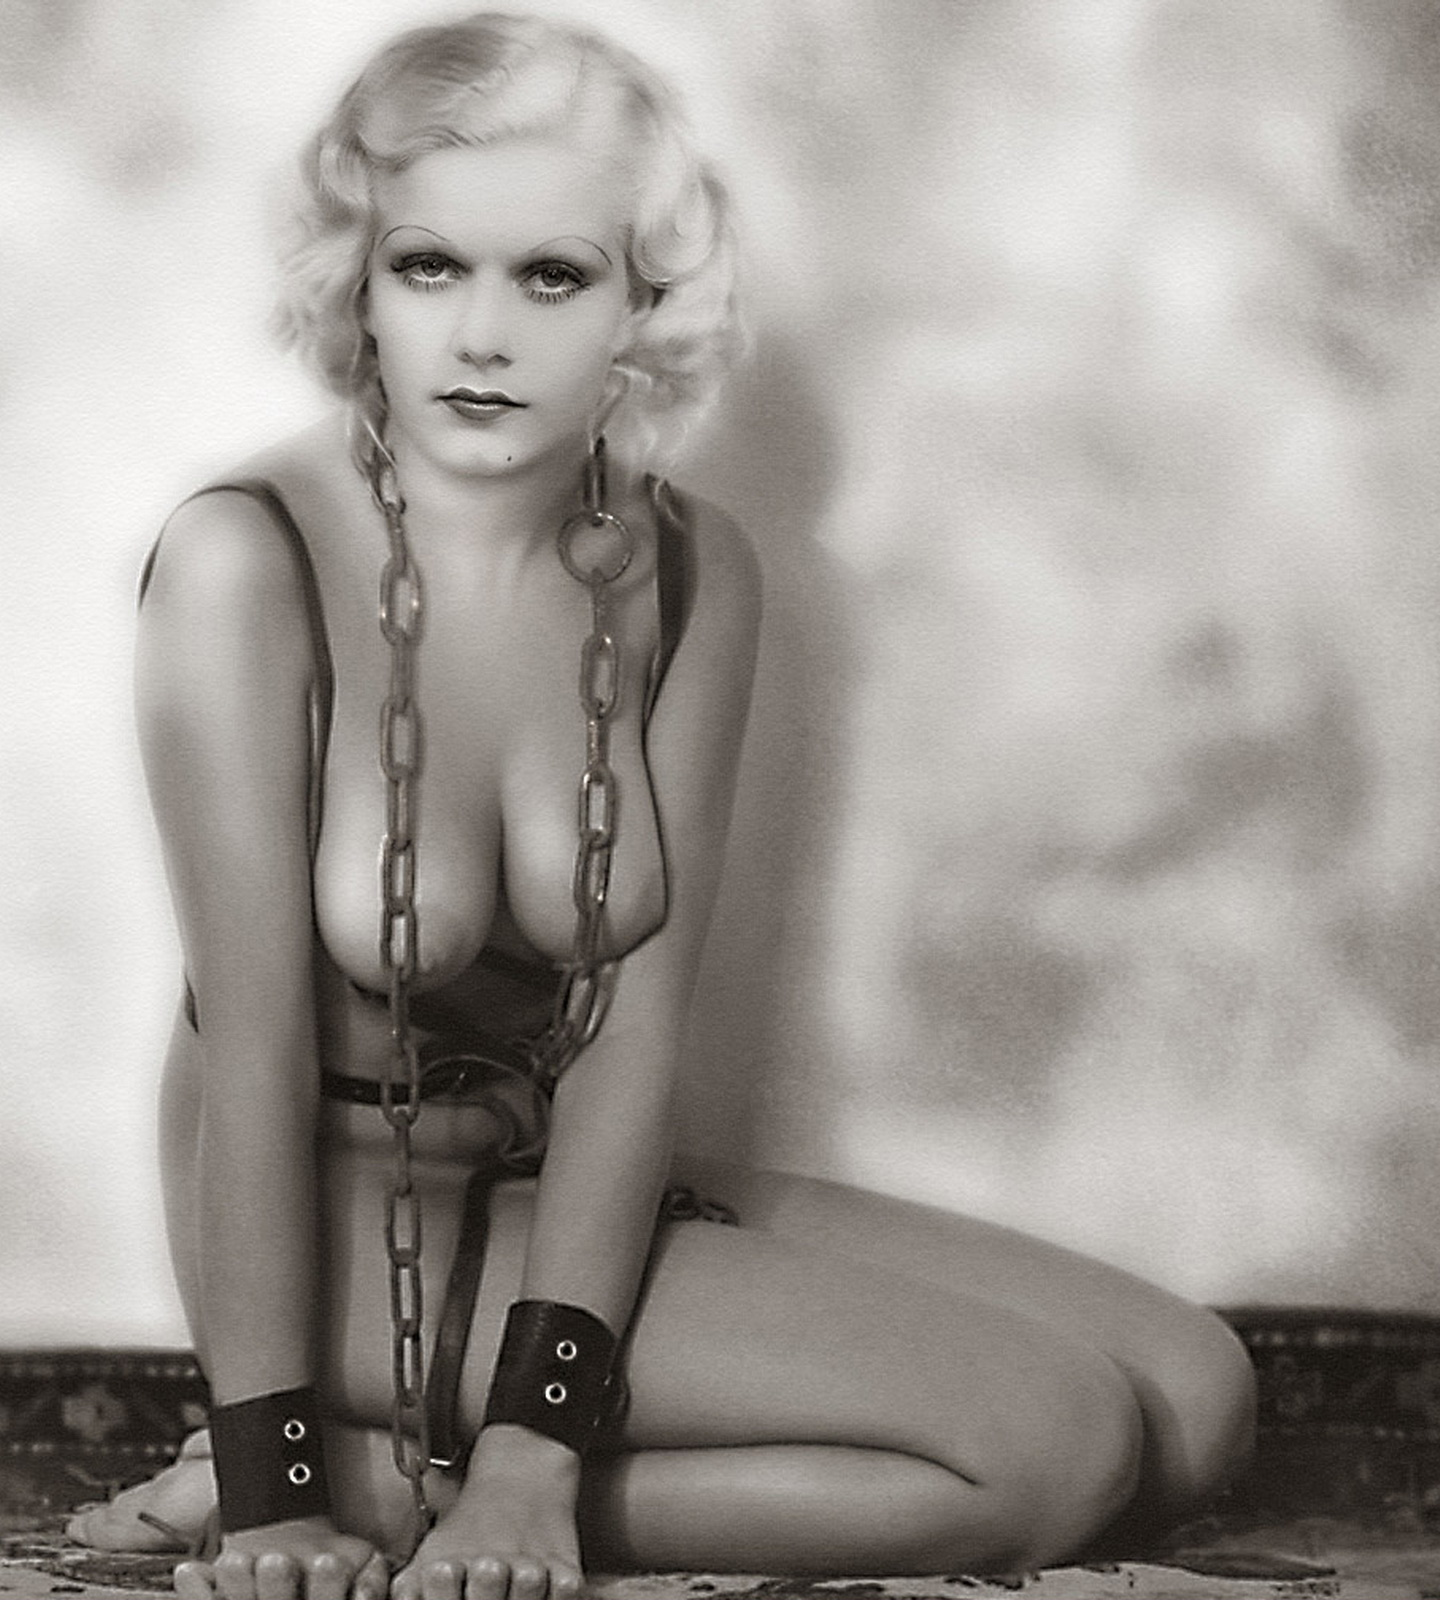 Jean Harlow nude bondage naked ... to San Francisco in the early 60s while he remained behind in Tijuana.